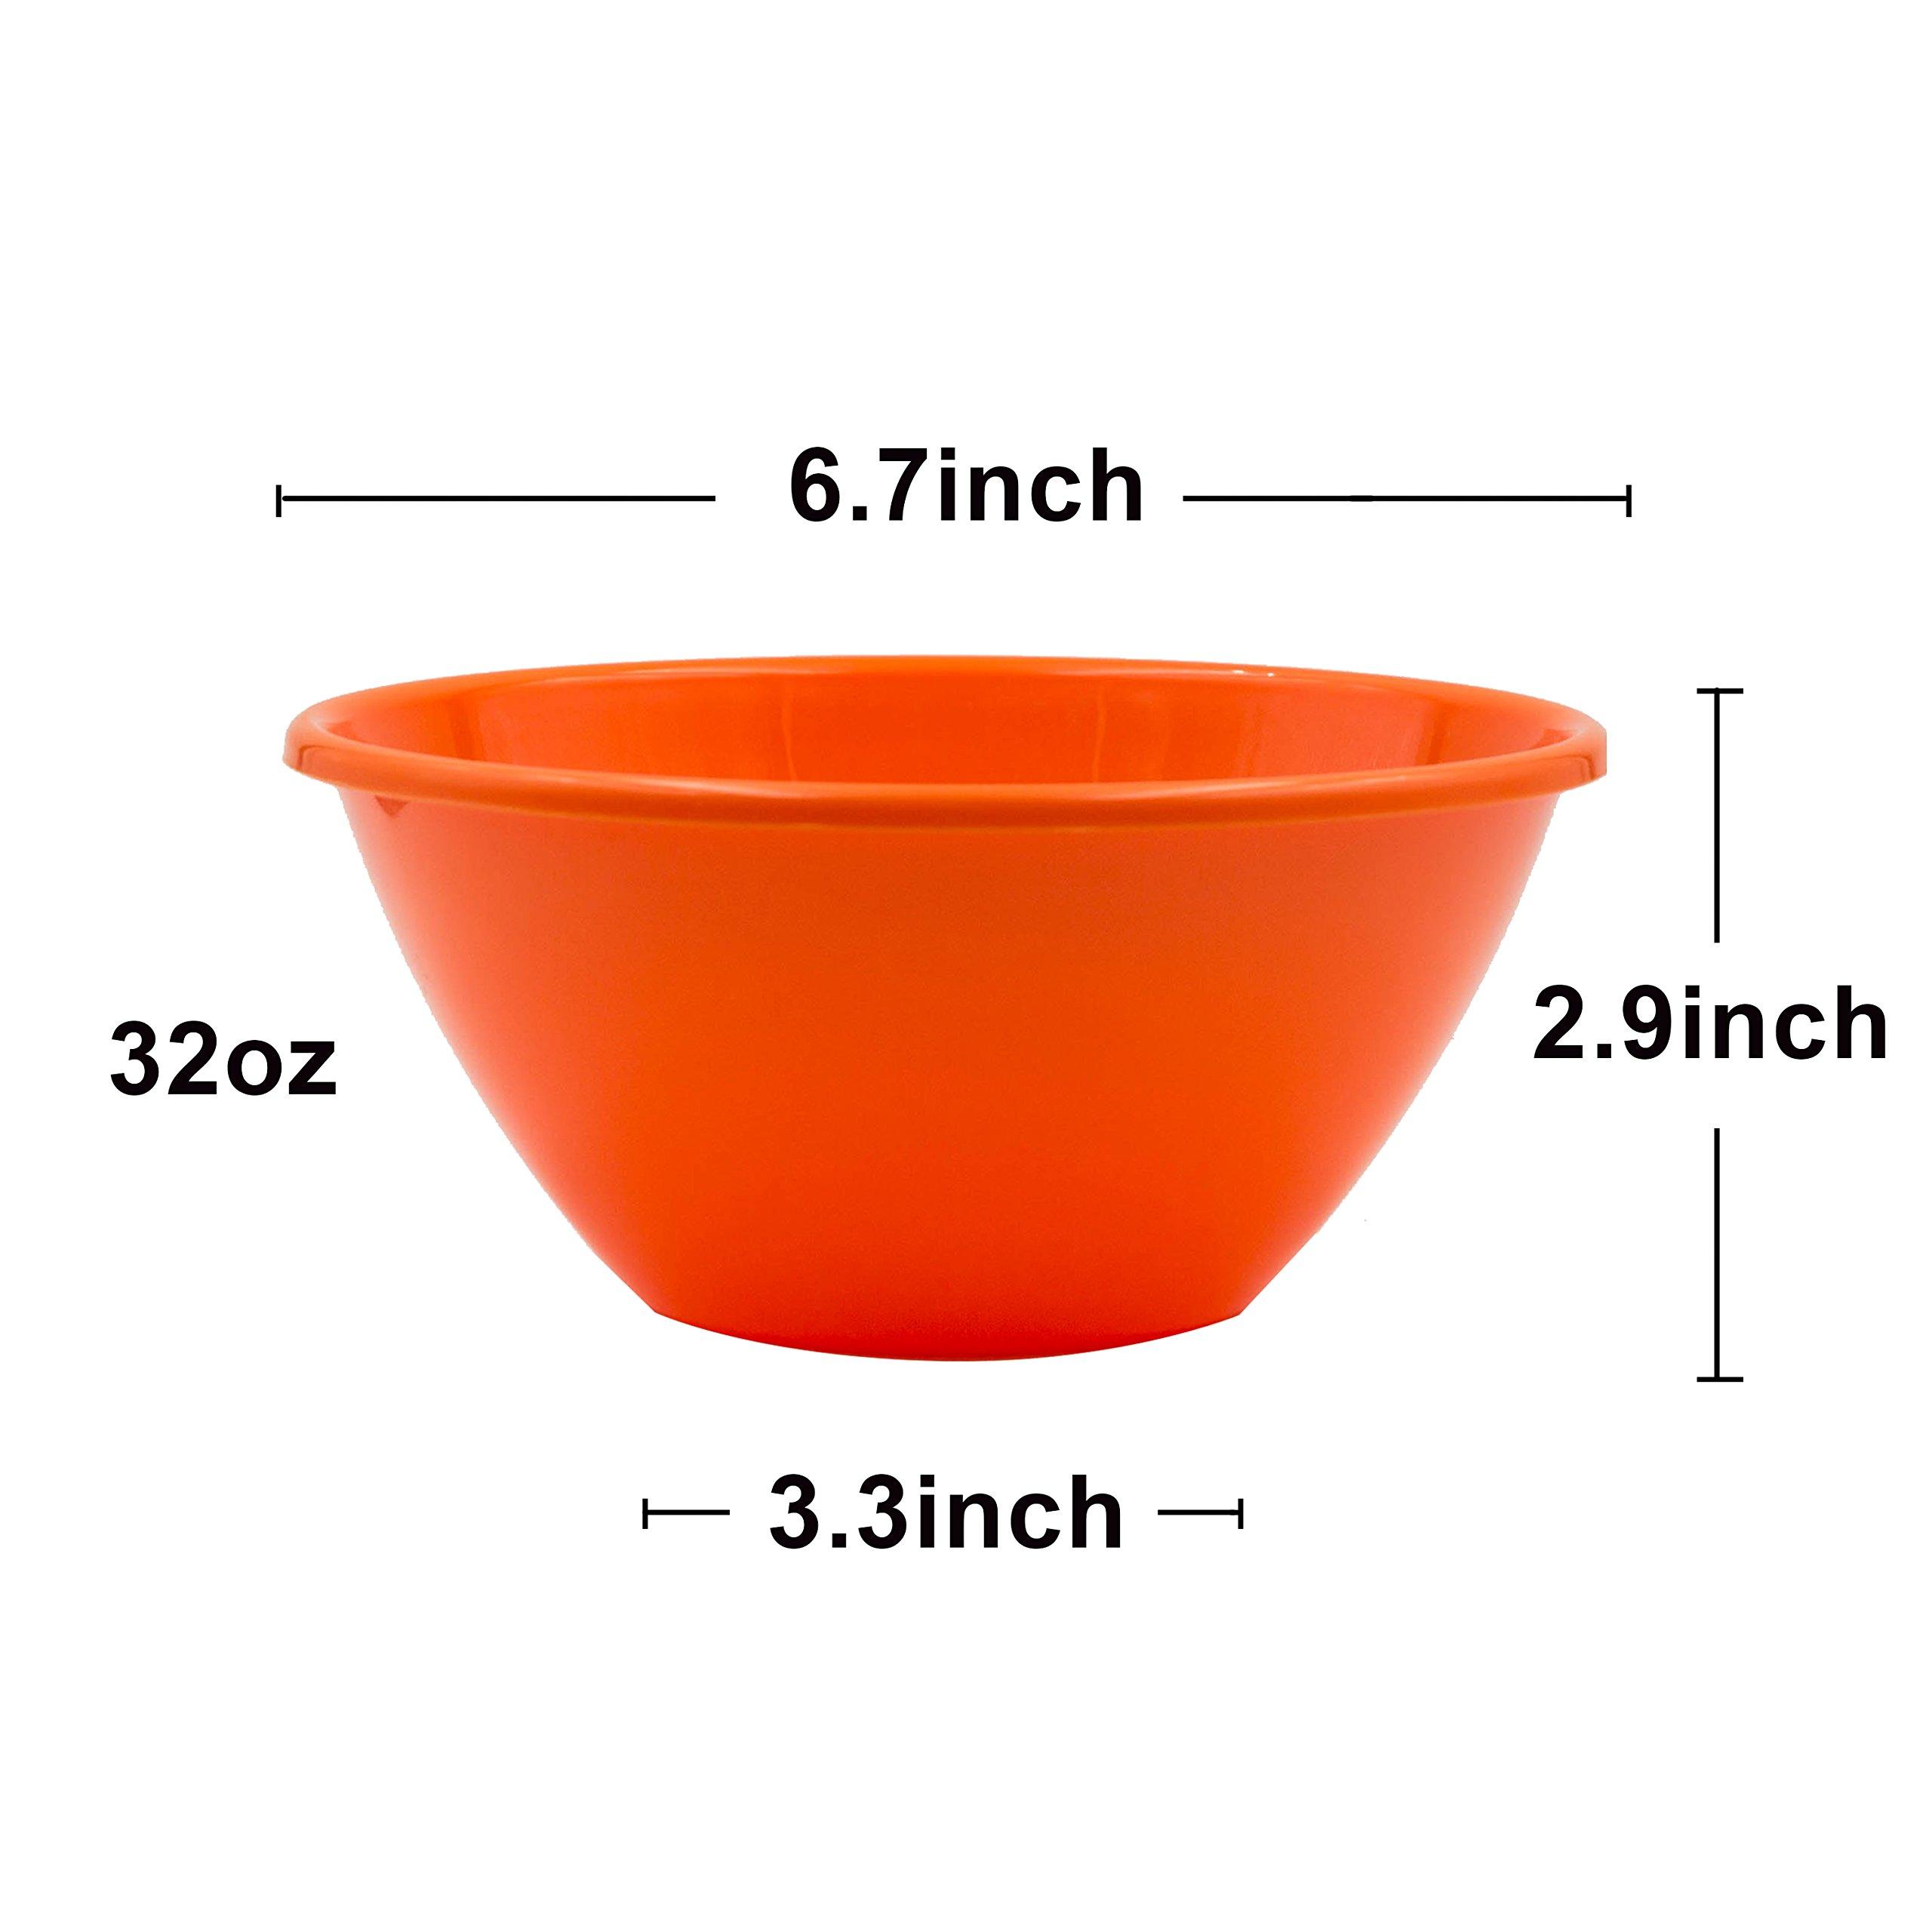 Youngever 32 ounce Plastic Bowls, Large Cereal Bowls, Large Soup Bowls, Microwave Safe, Dishwasher Safe, Set of 9 in 9 Assorted Colors by Youngever (Image #3)